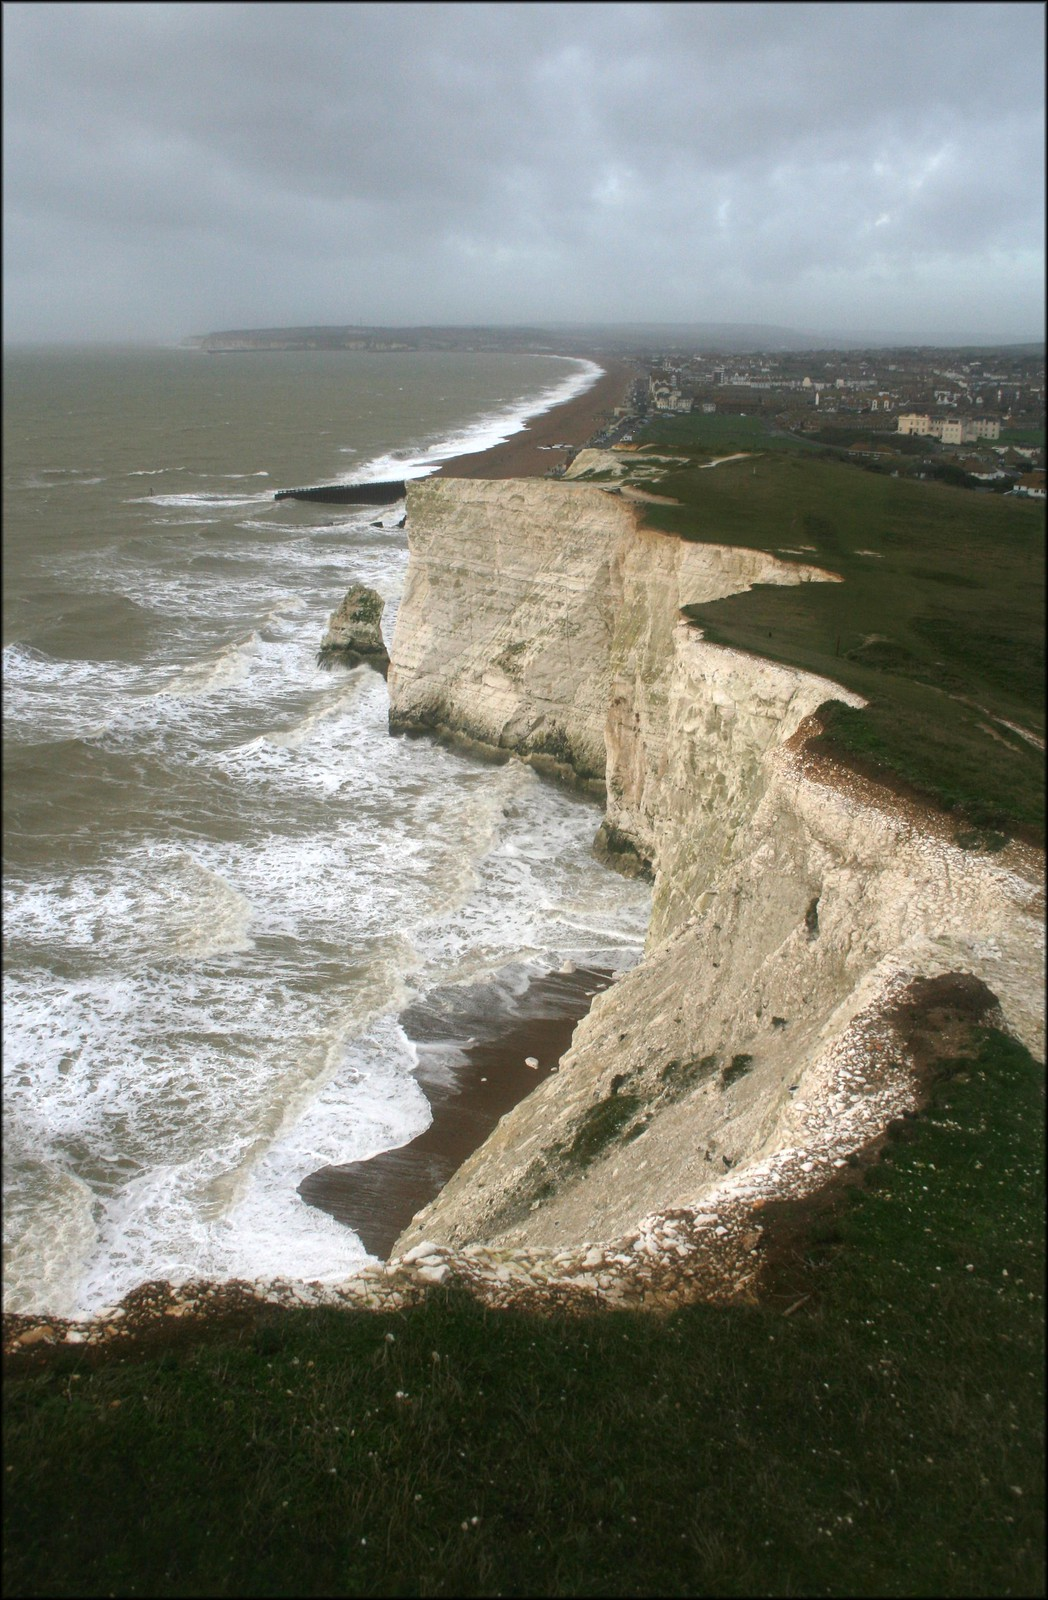 Seaford The chalk cliffs on the eastern edge of Seaford